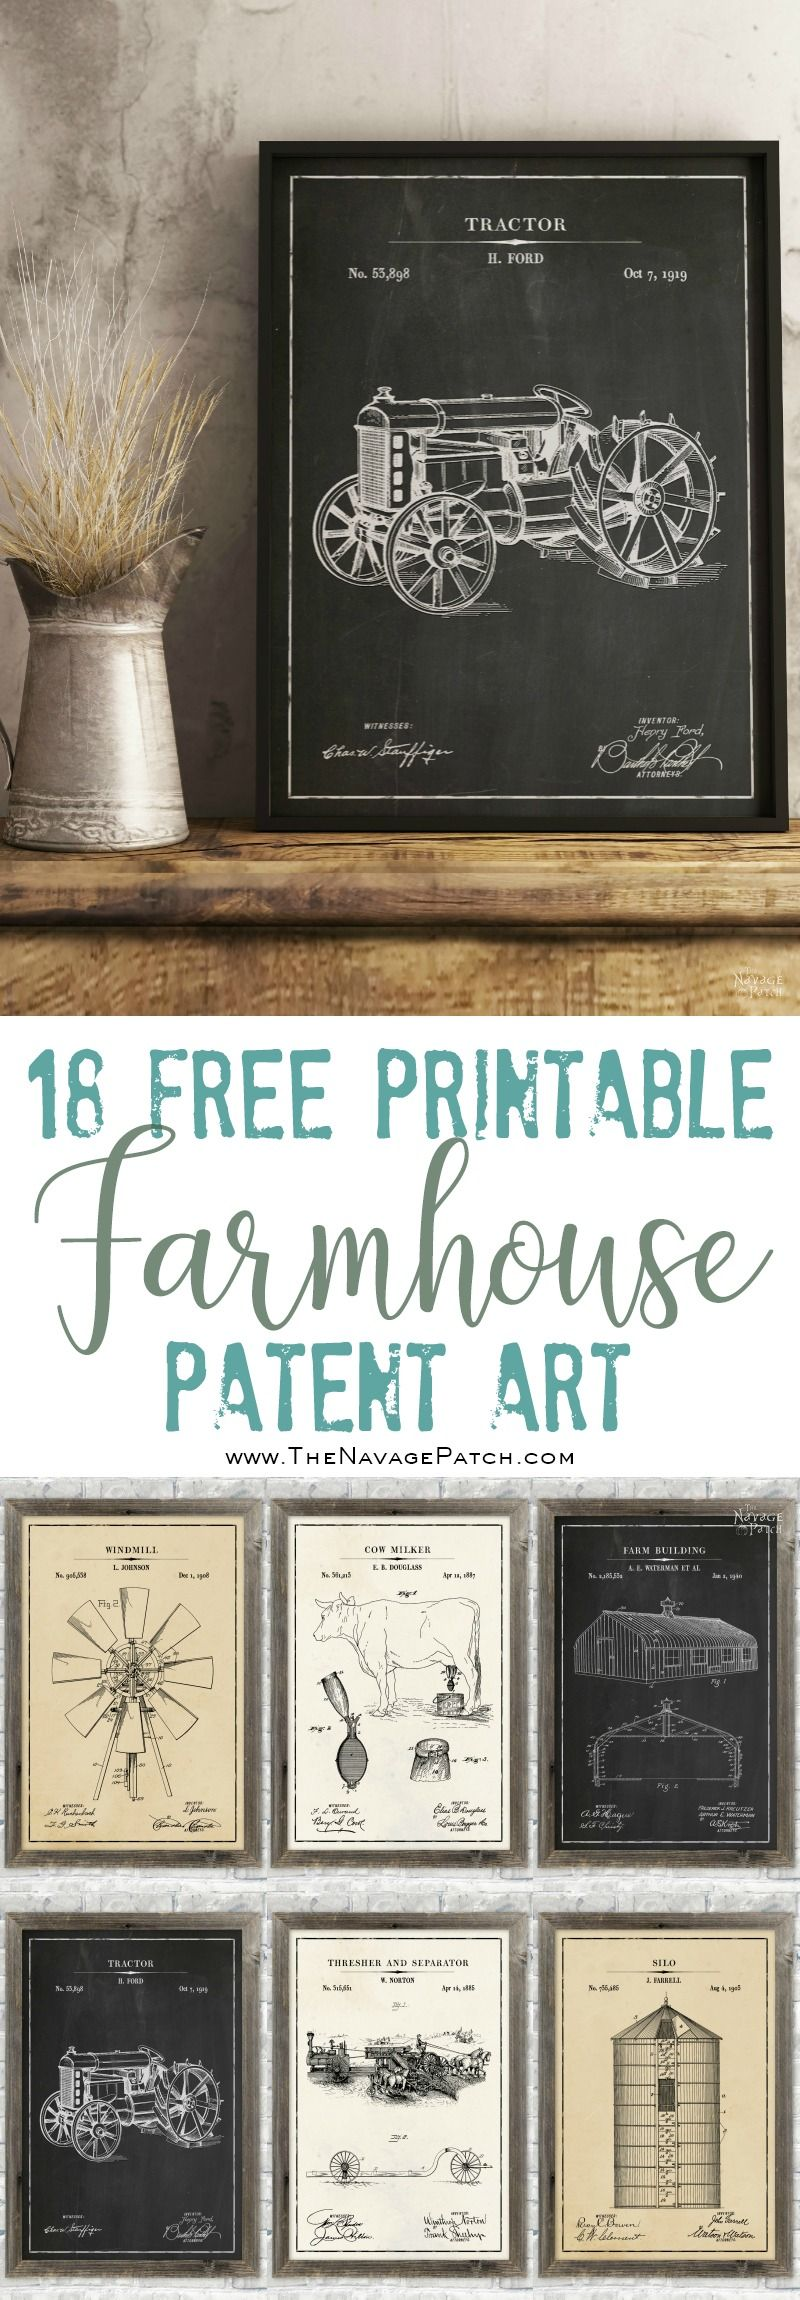 Farmhouse Patent Art pinterest image